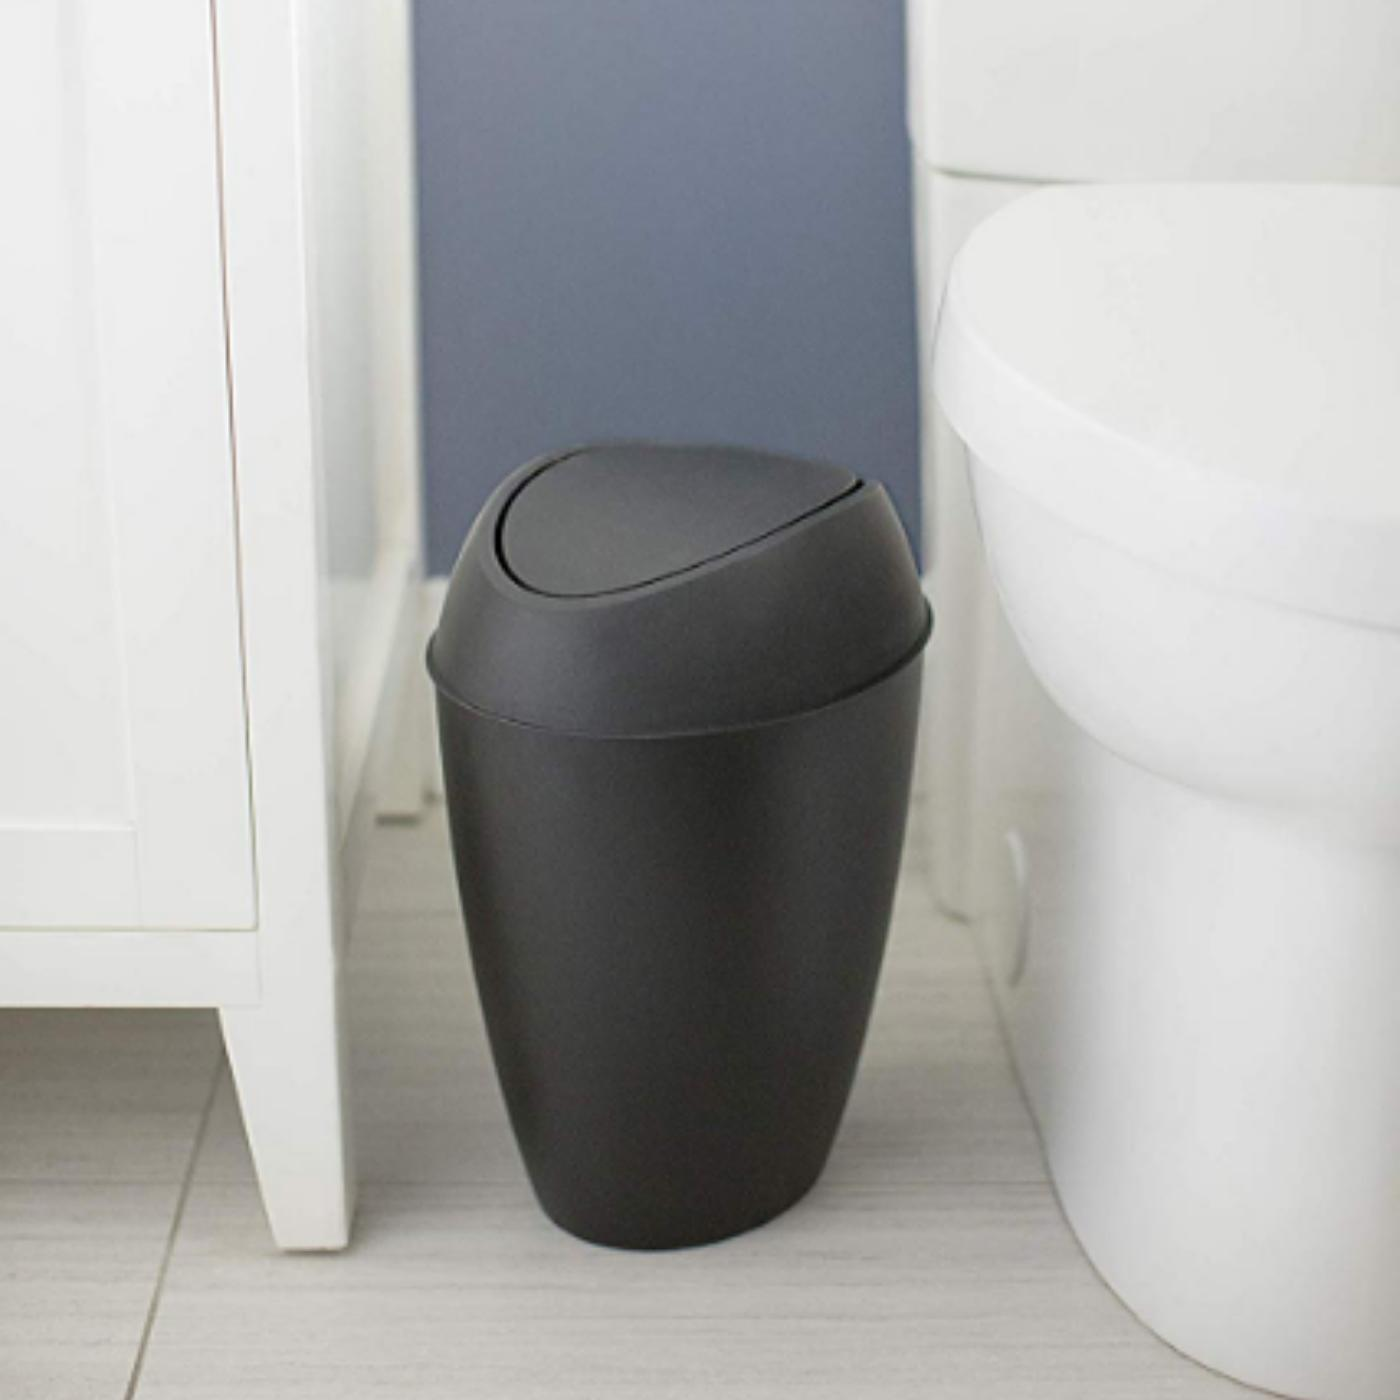 Swing Lid Kitchen Bathroom Office Trash Waste Basket